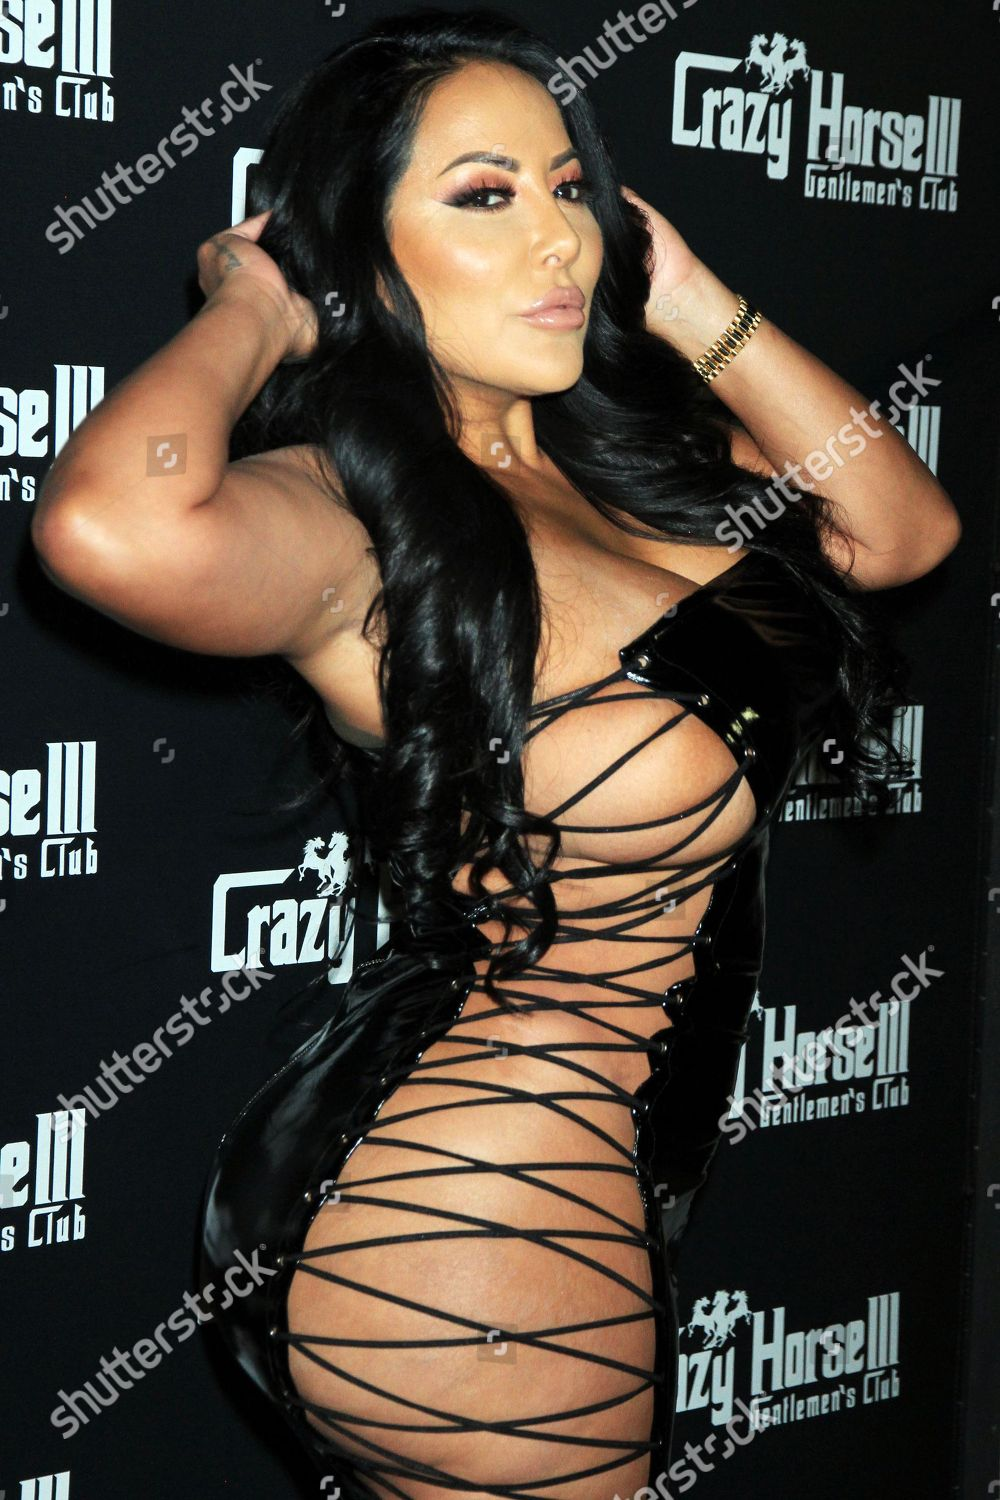 Foto De Stock De Kiara Mia Hosts Party At Crazy Horse 3 Gentlemens Club Las